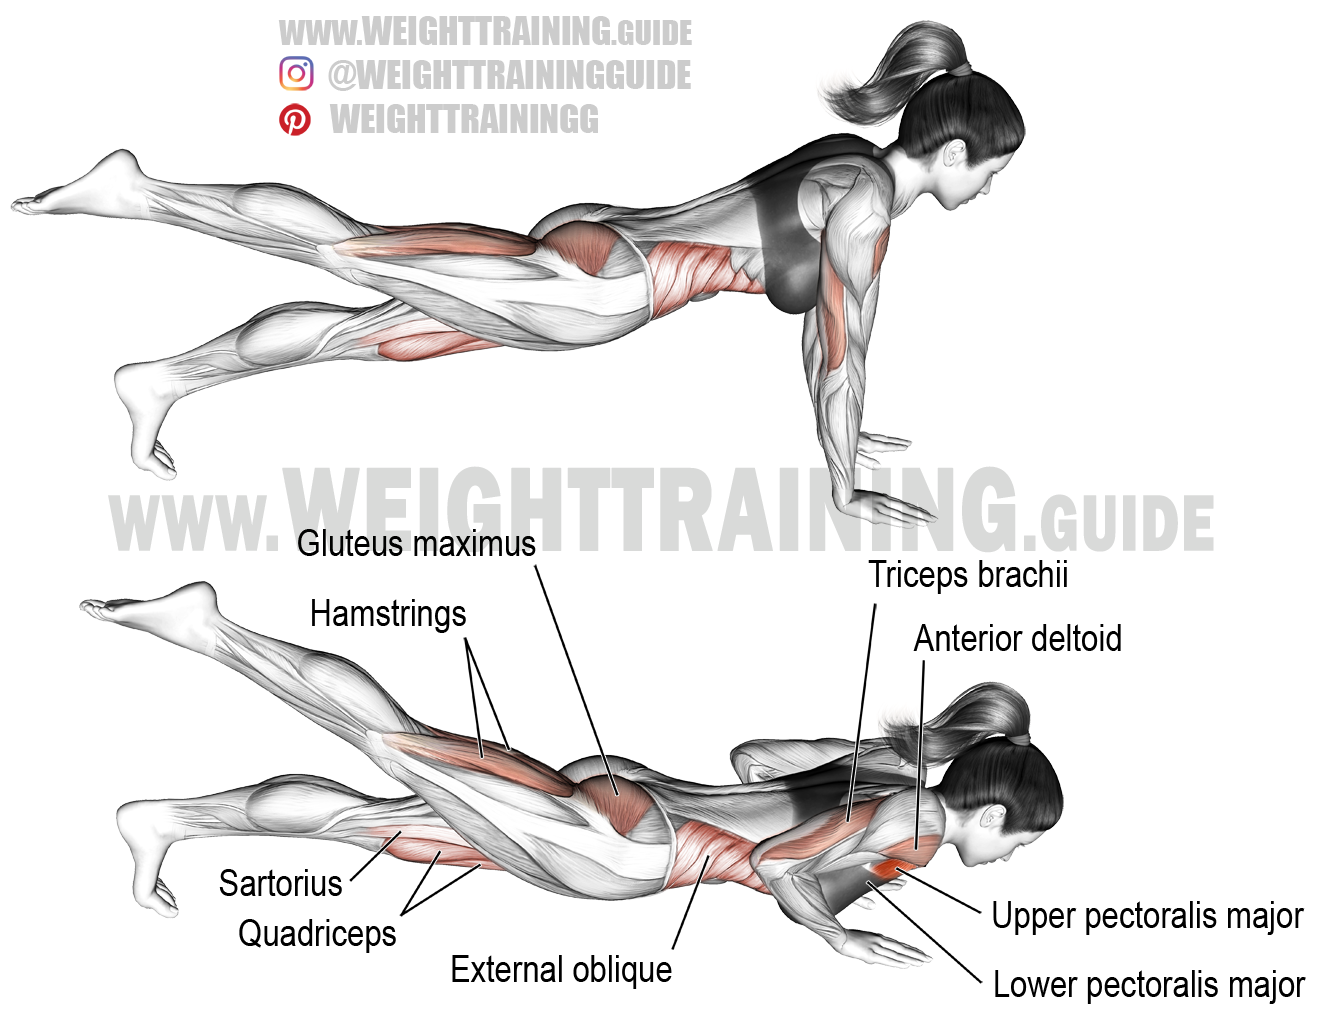 One Leg Push Up Exercise Instructions And Video